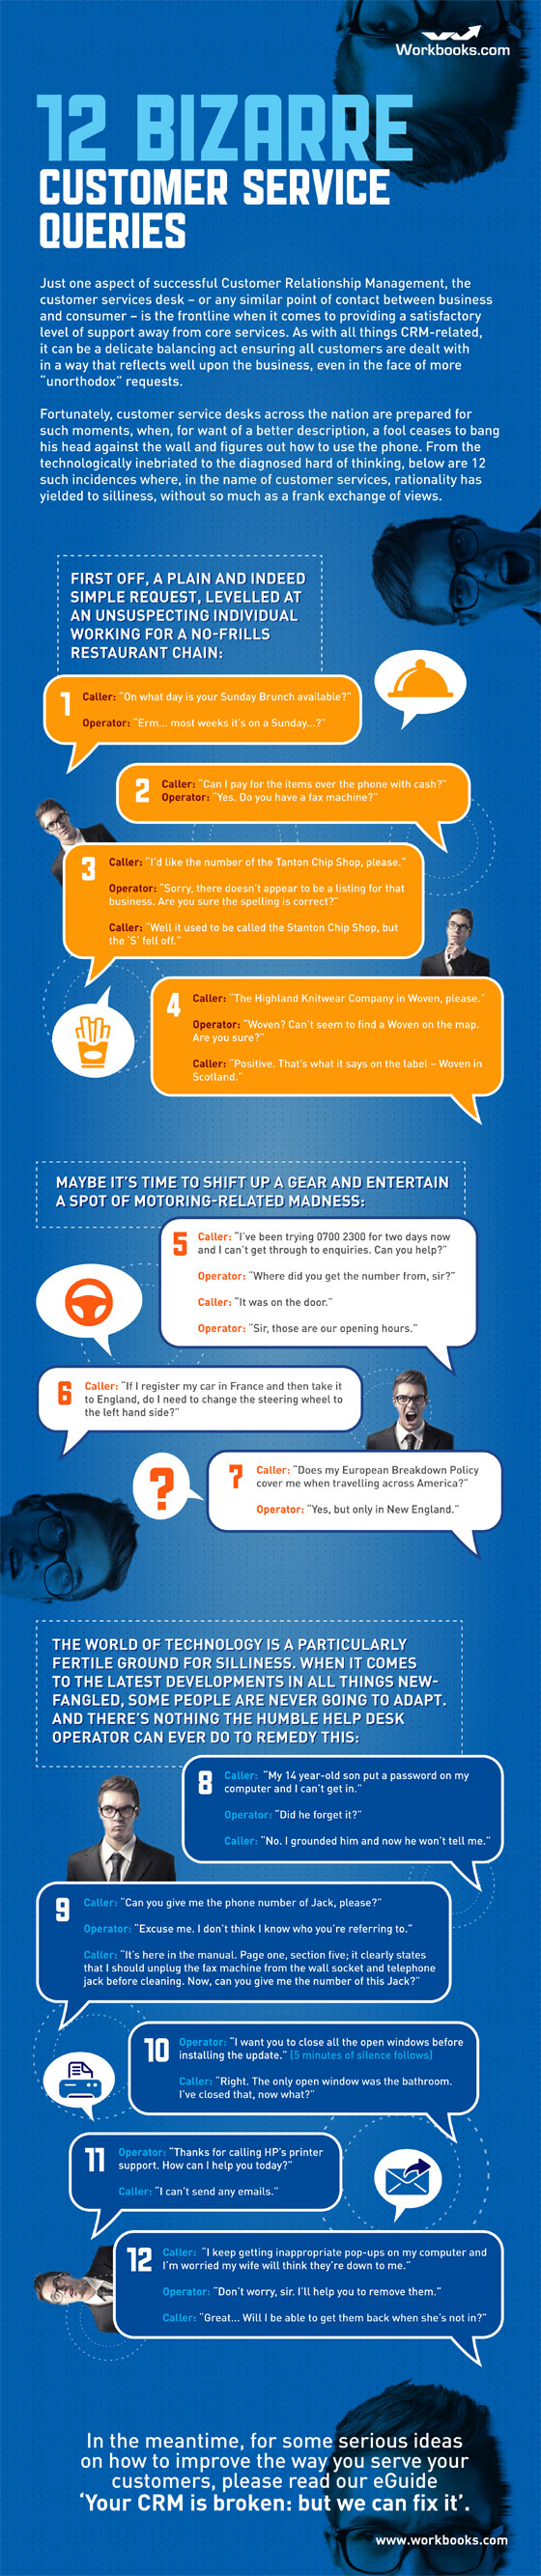 Weird Customer Queries-infographic